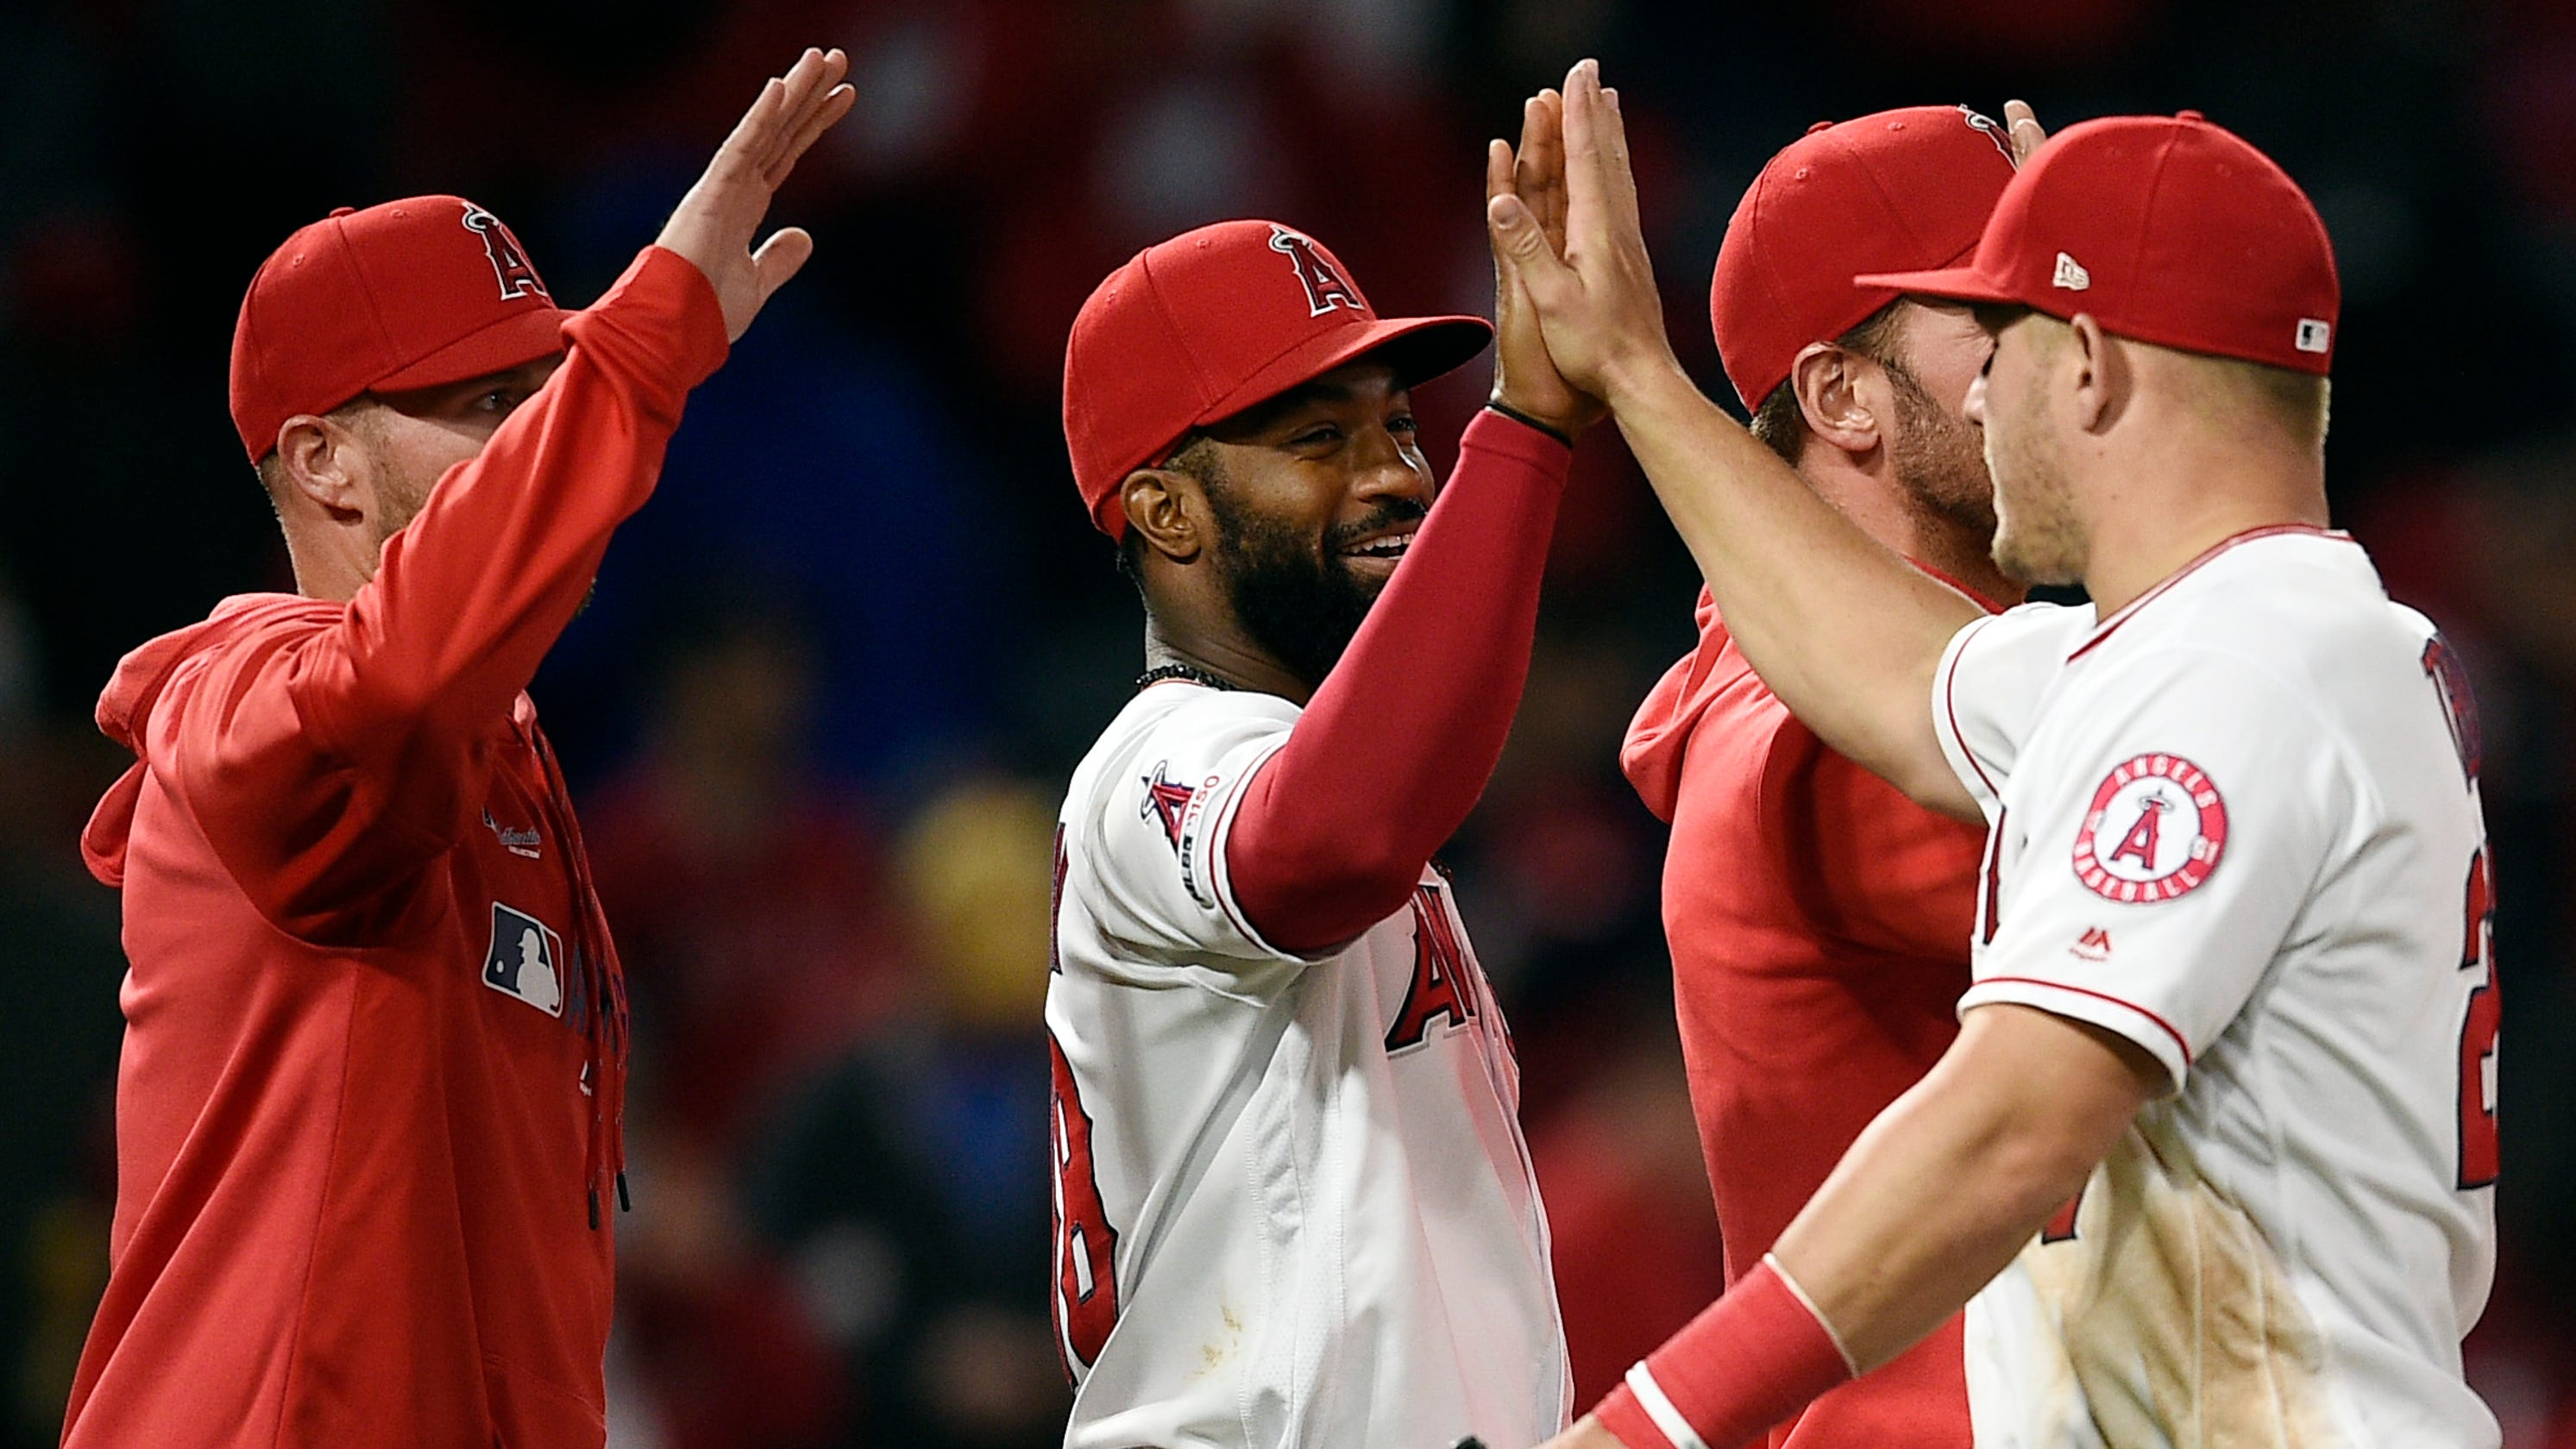 af62c06b3 Angels' odd mix of Mike Trout & Co. inspires hope: 'Nothing but belief in  ourselves'